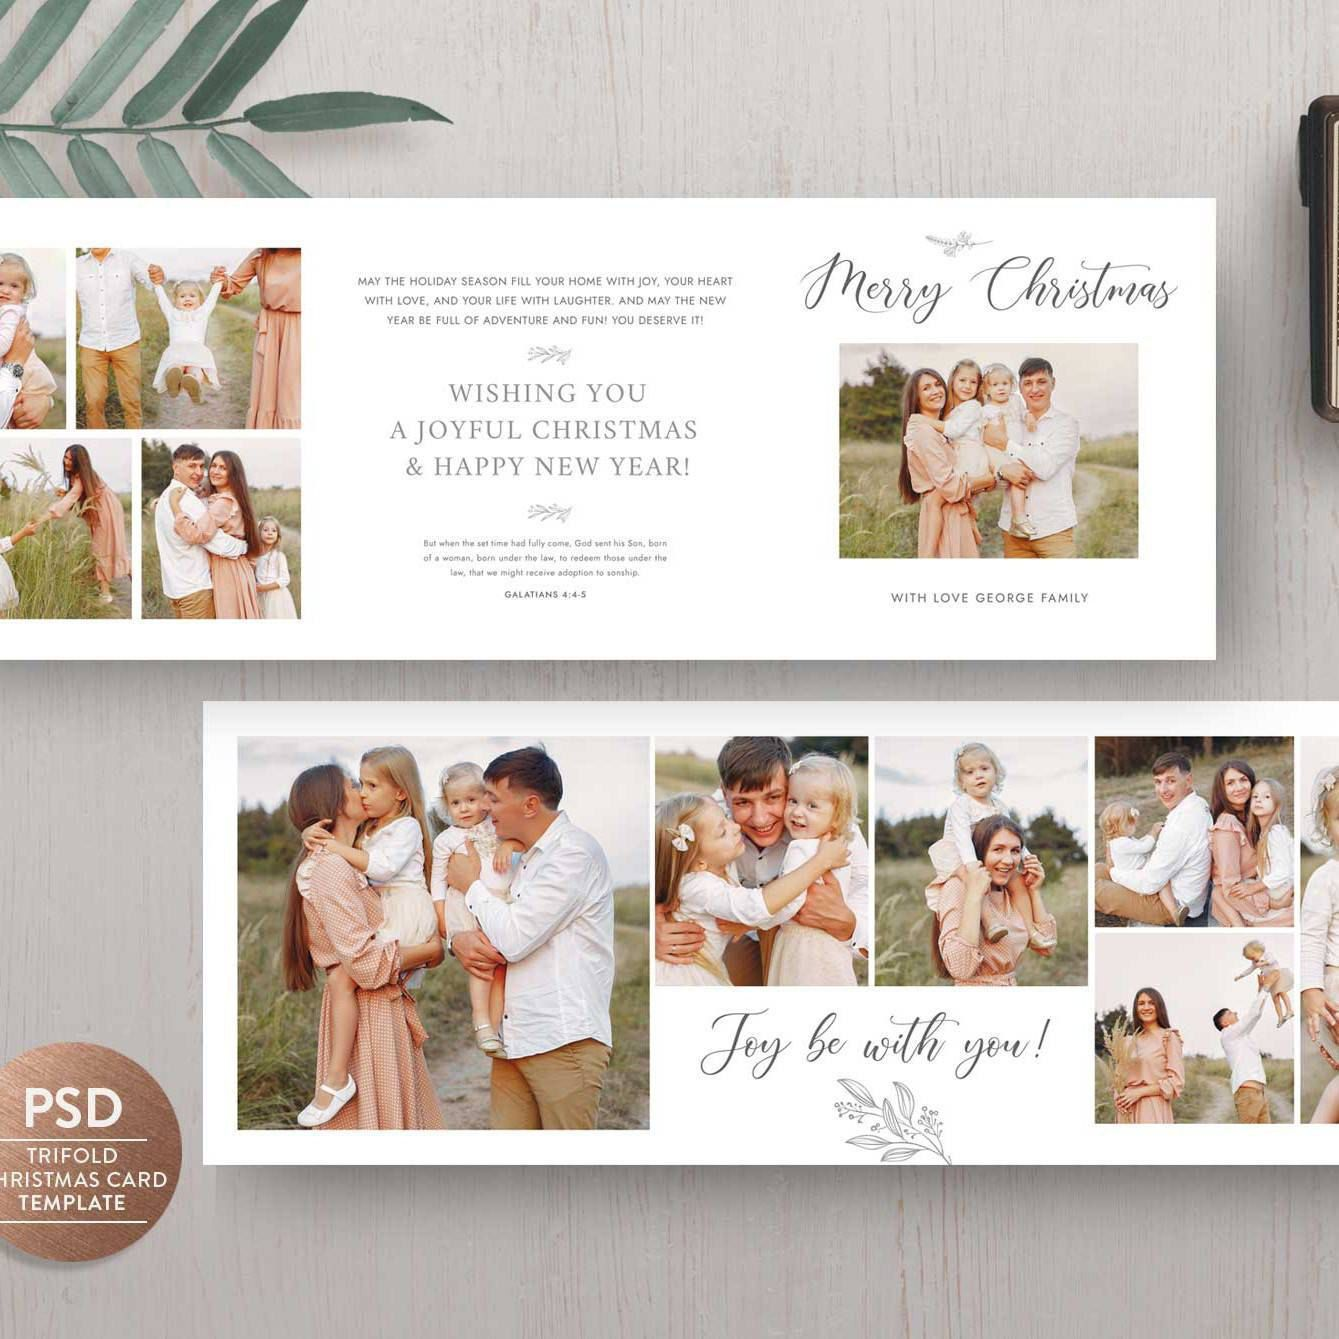 New Trifold Holiday Card Use This And Send Your Warmest Greetings For Your Clients Fami Holiday Card Template Christmas Card Template Mini Session Template